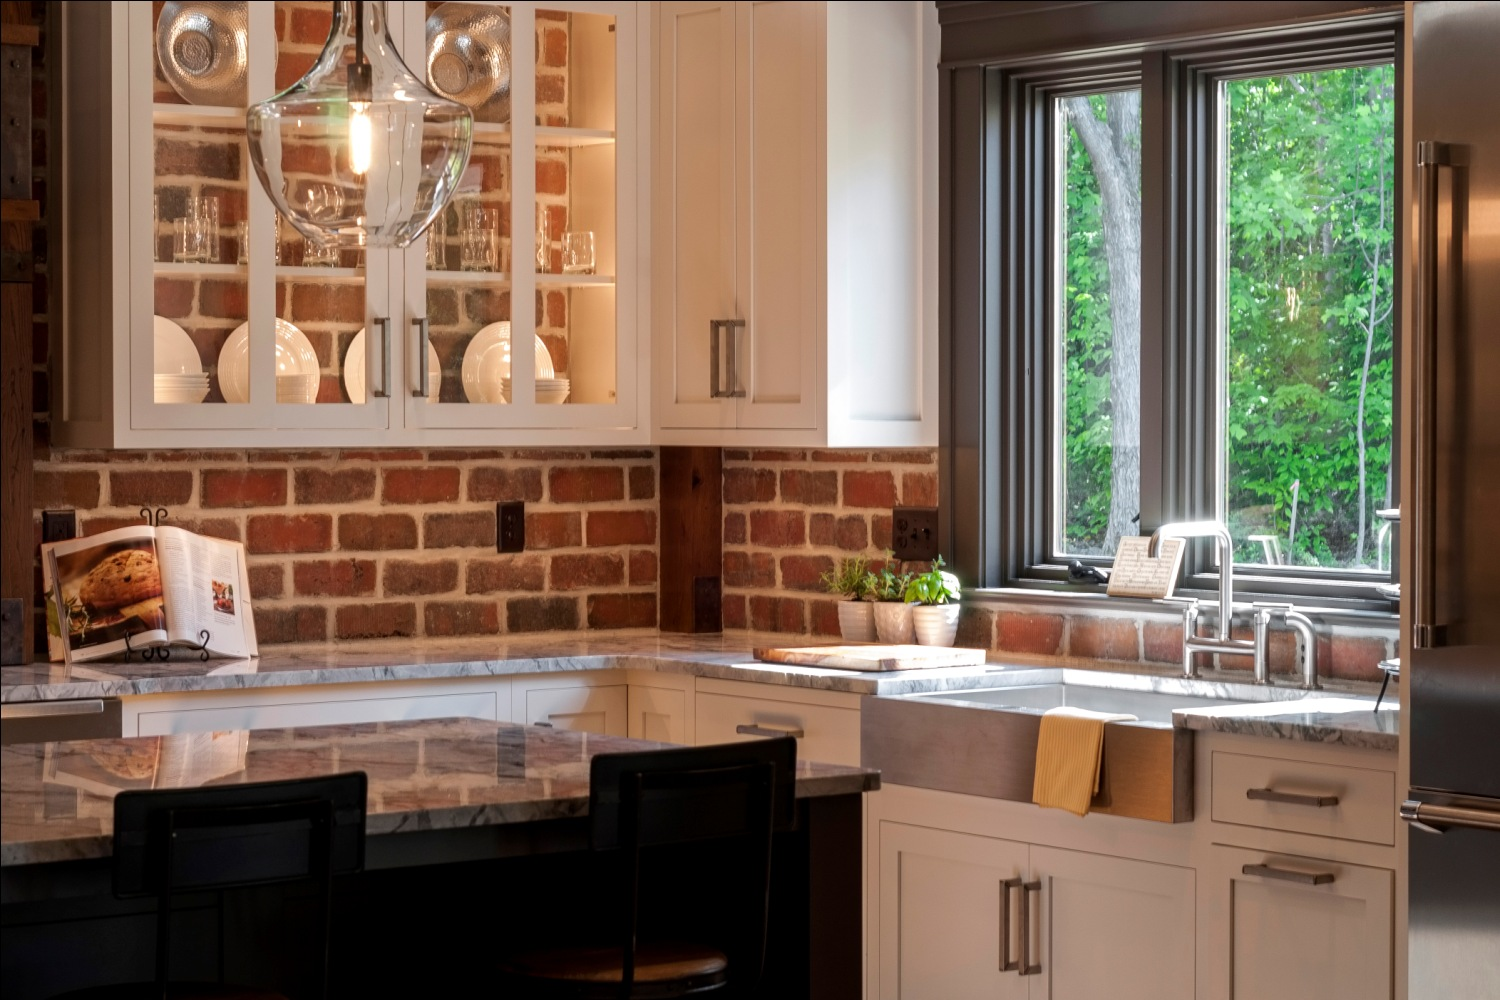 Brick Wall Kitchen